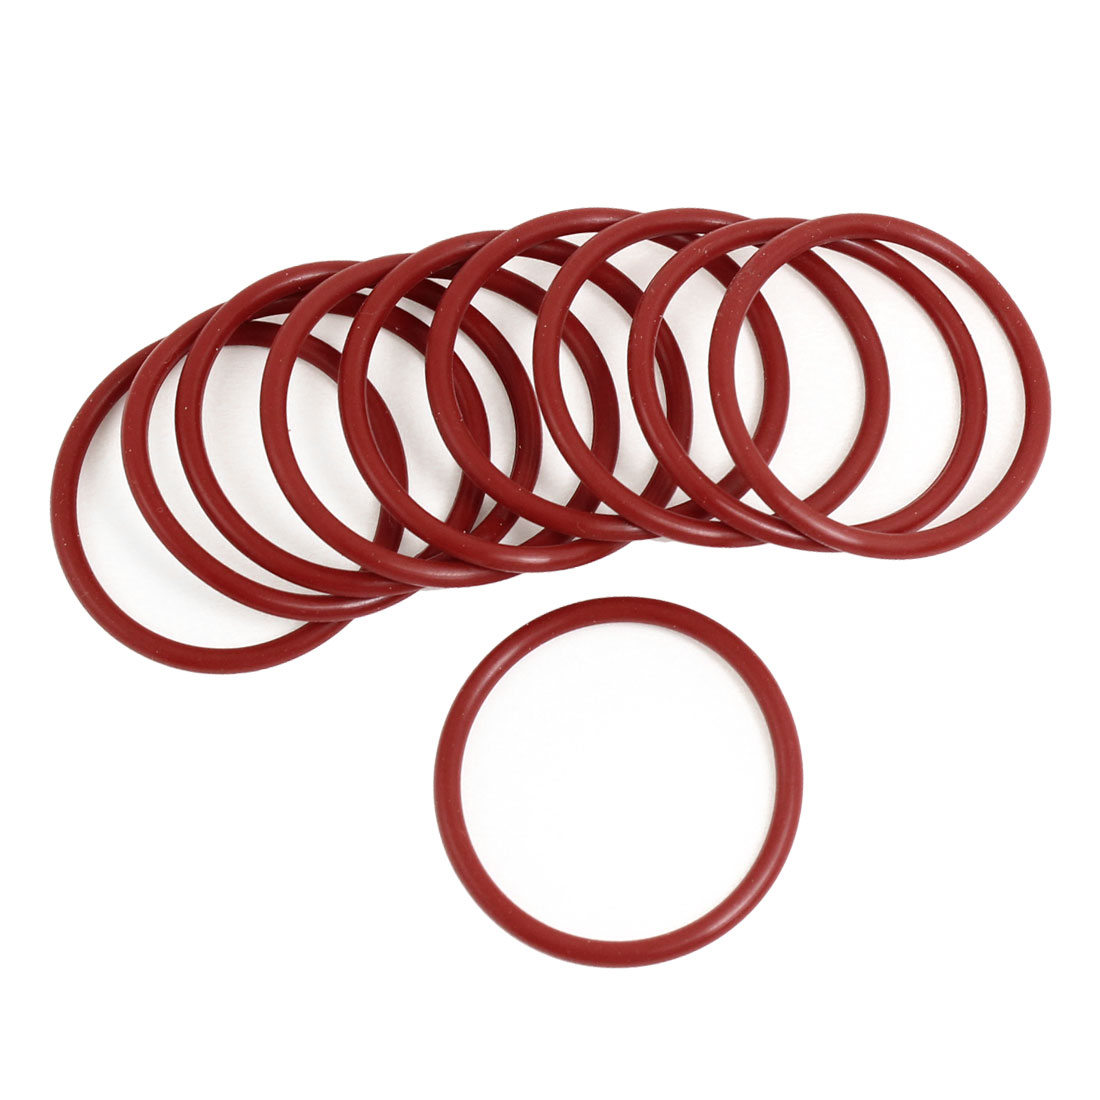 Unique Bargains 10 Pieces 43mm x 3mm x 37mm Rubber Sealing Washers Oil Filter O Rings Red